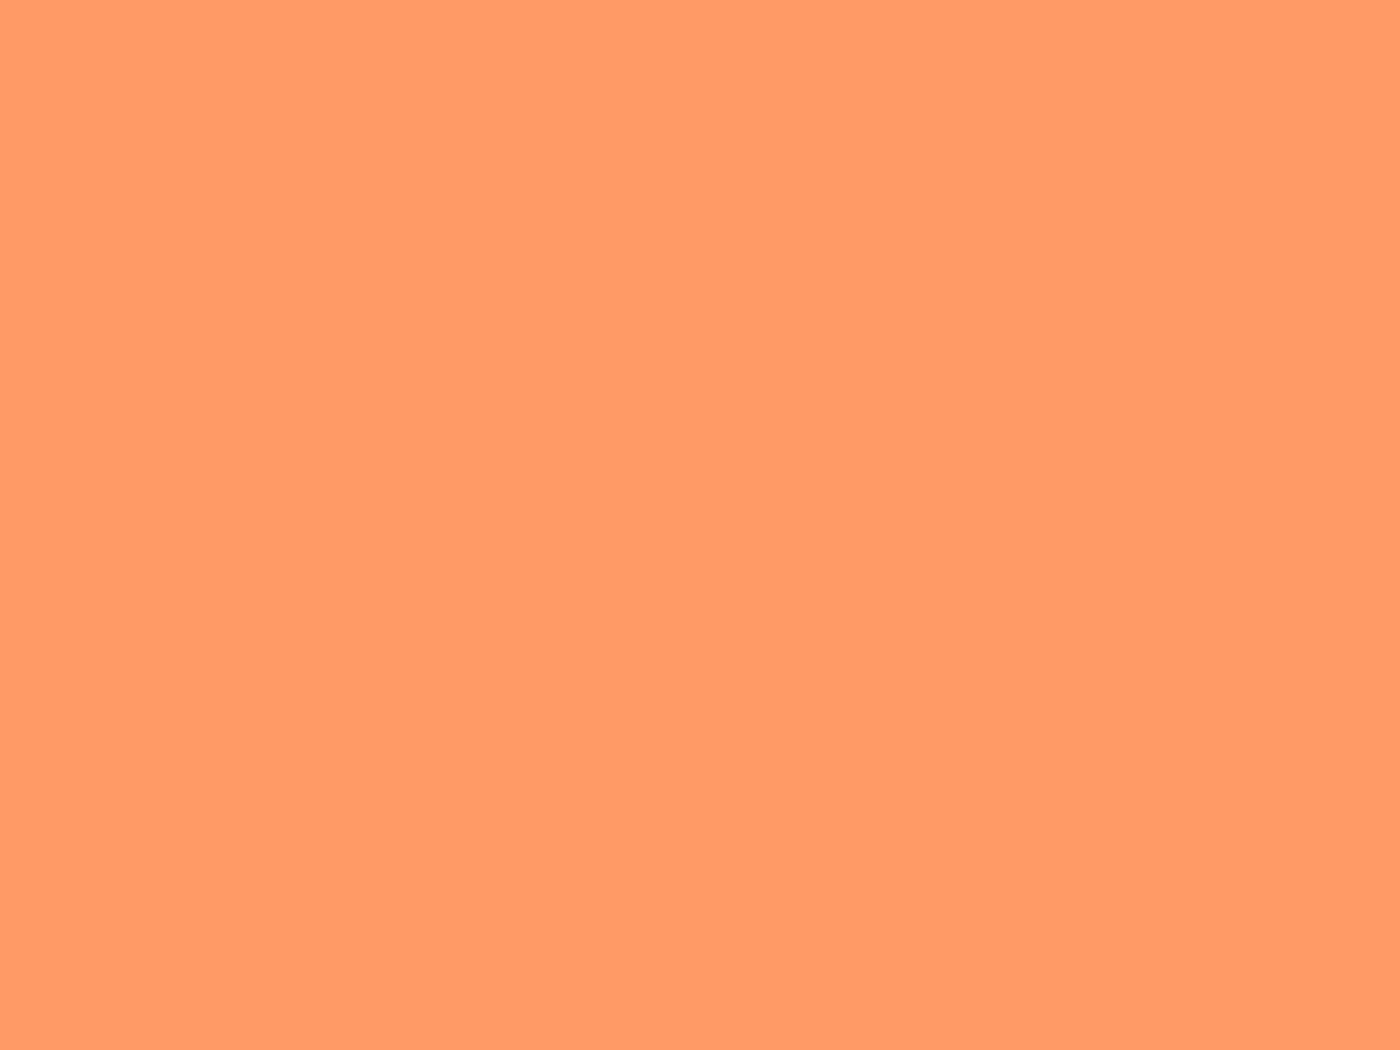 1400x1050 Atomic Tangerine Solid Color Background